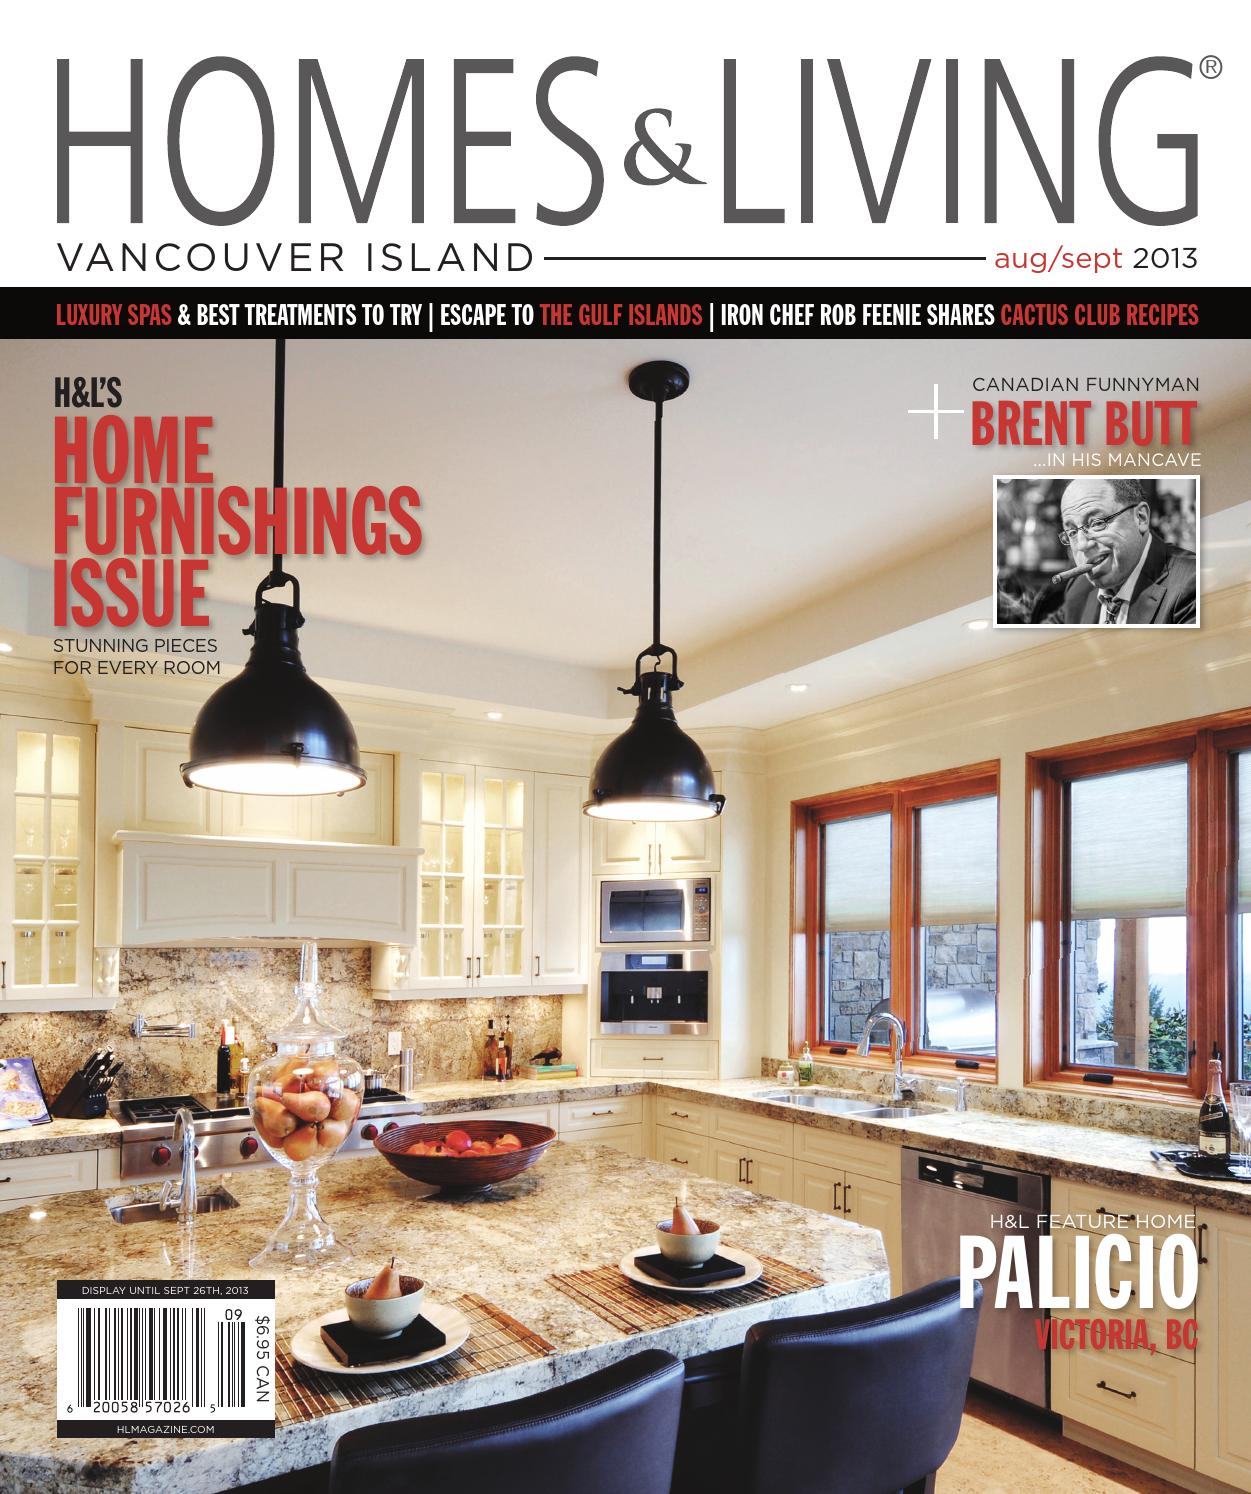 Vancouver Living: Homes & Living Vancouver Island Aug/Sept 2013 Issue By